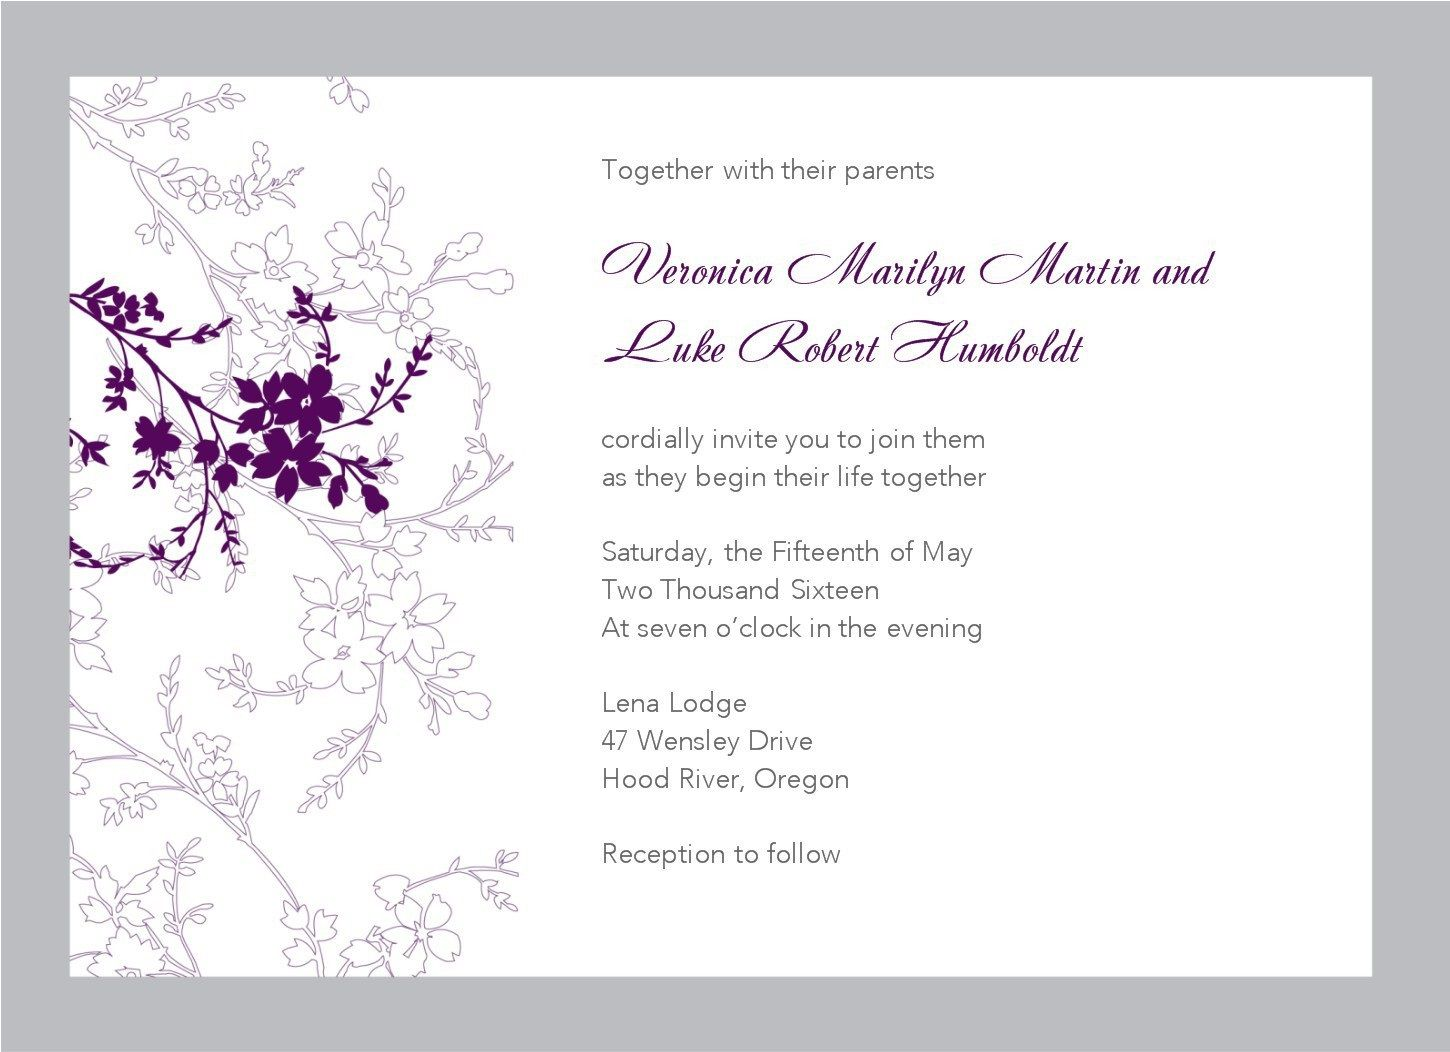 009 Remarkable Free Wedding Invitation Template For Word 2019 Design Full